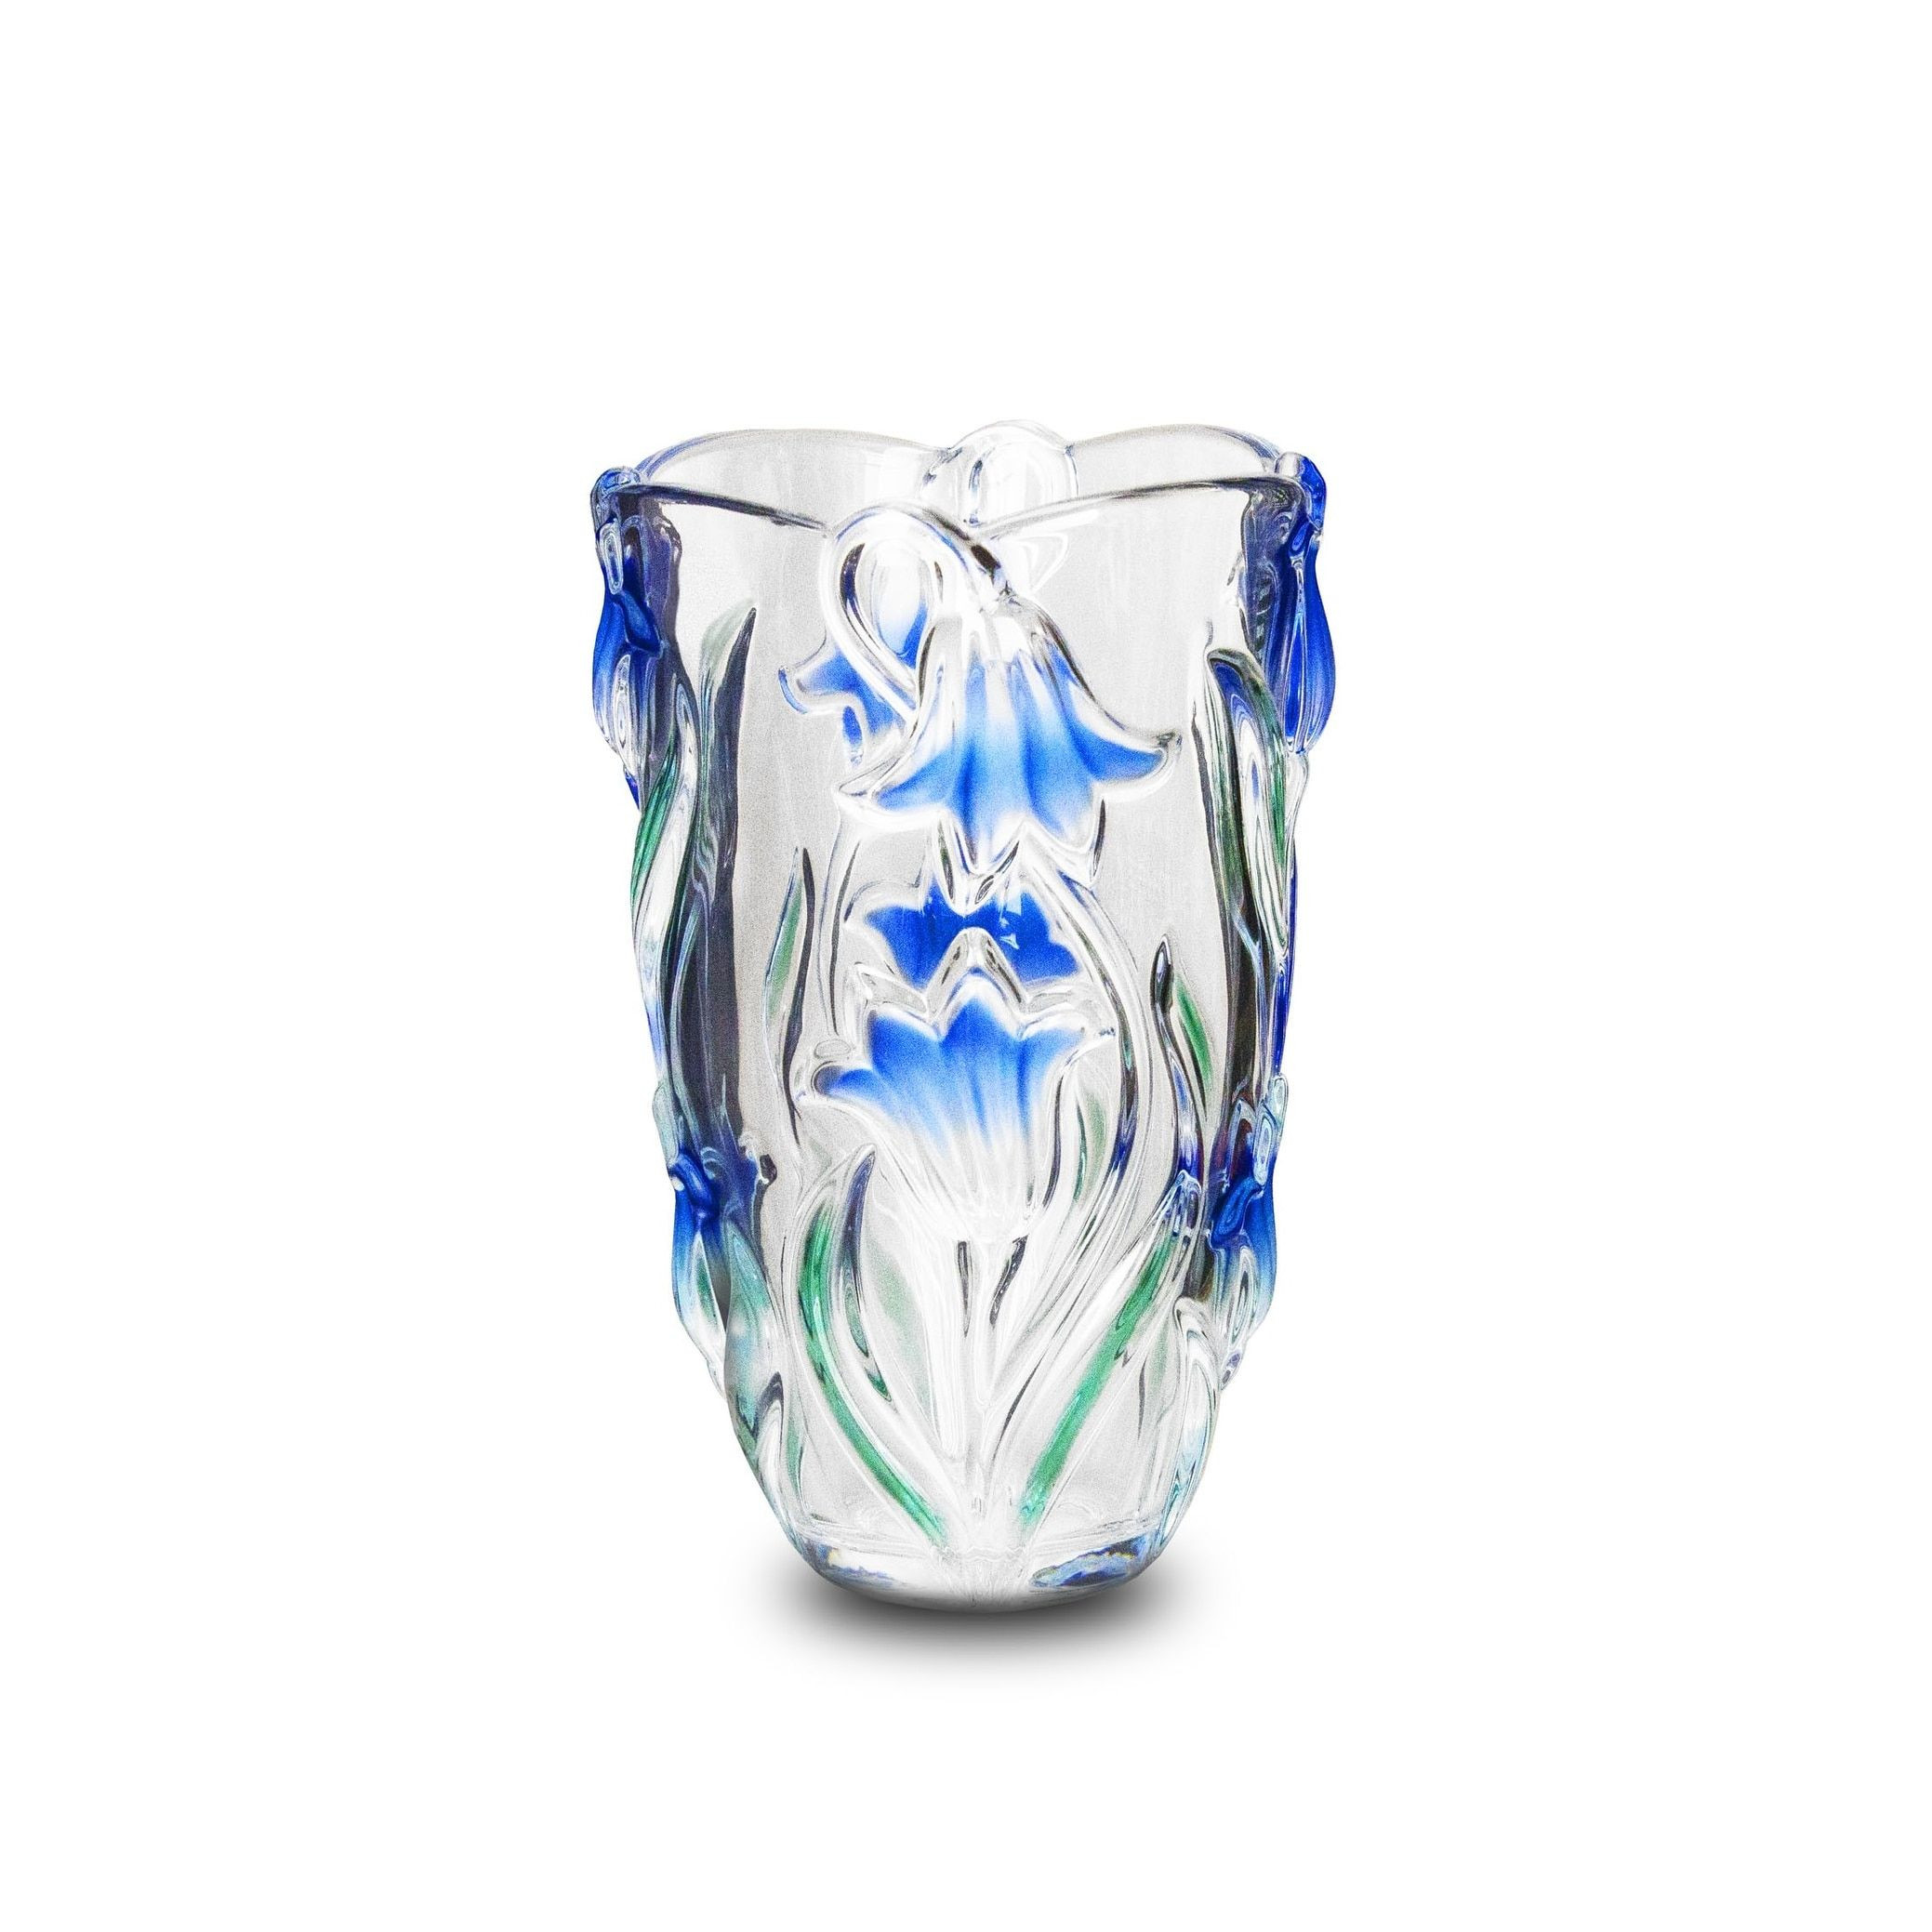 11 Fashionable Crystal Vases for Sale 2021 free download crystal vases for sale of studio silversmiths blue danube collection crystal vase products inside studio silversmiths blue danube collection crystal vase